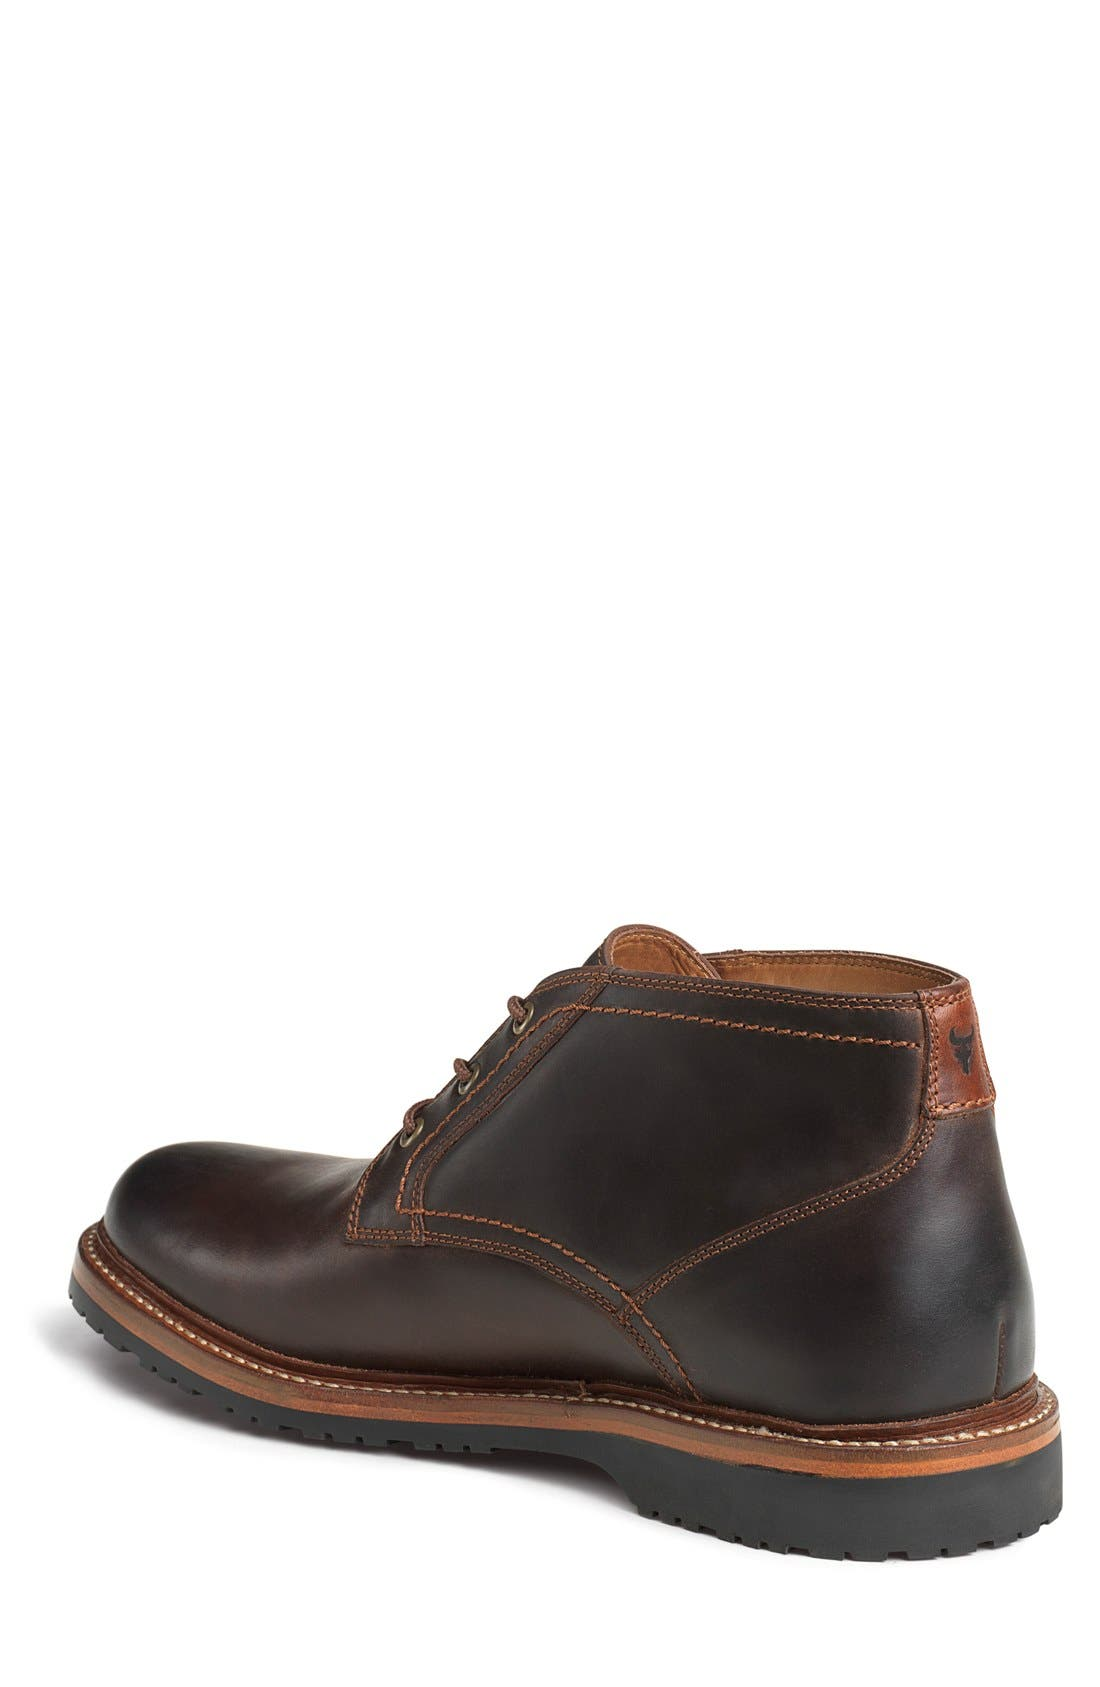 Alternate Image 2  - Trask Arlington Chukka Boot (Men)